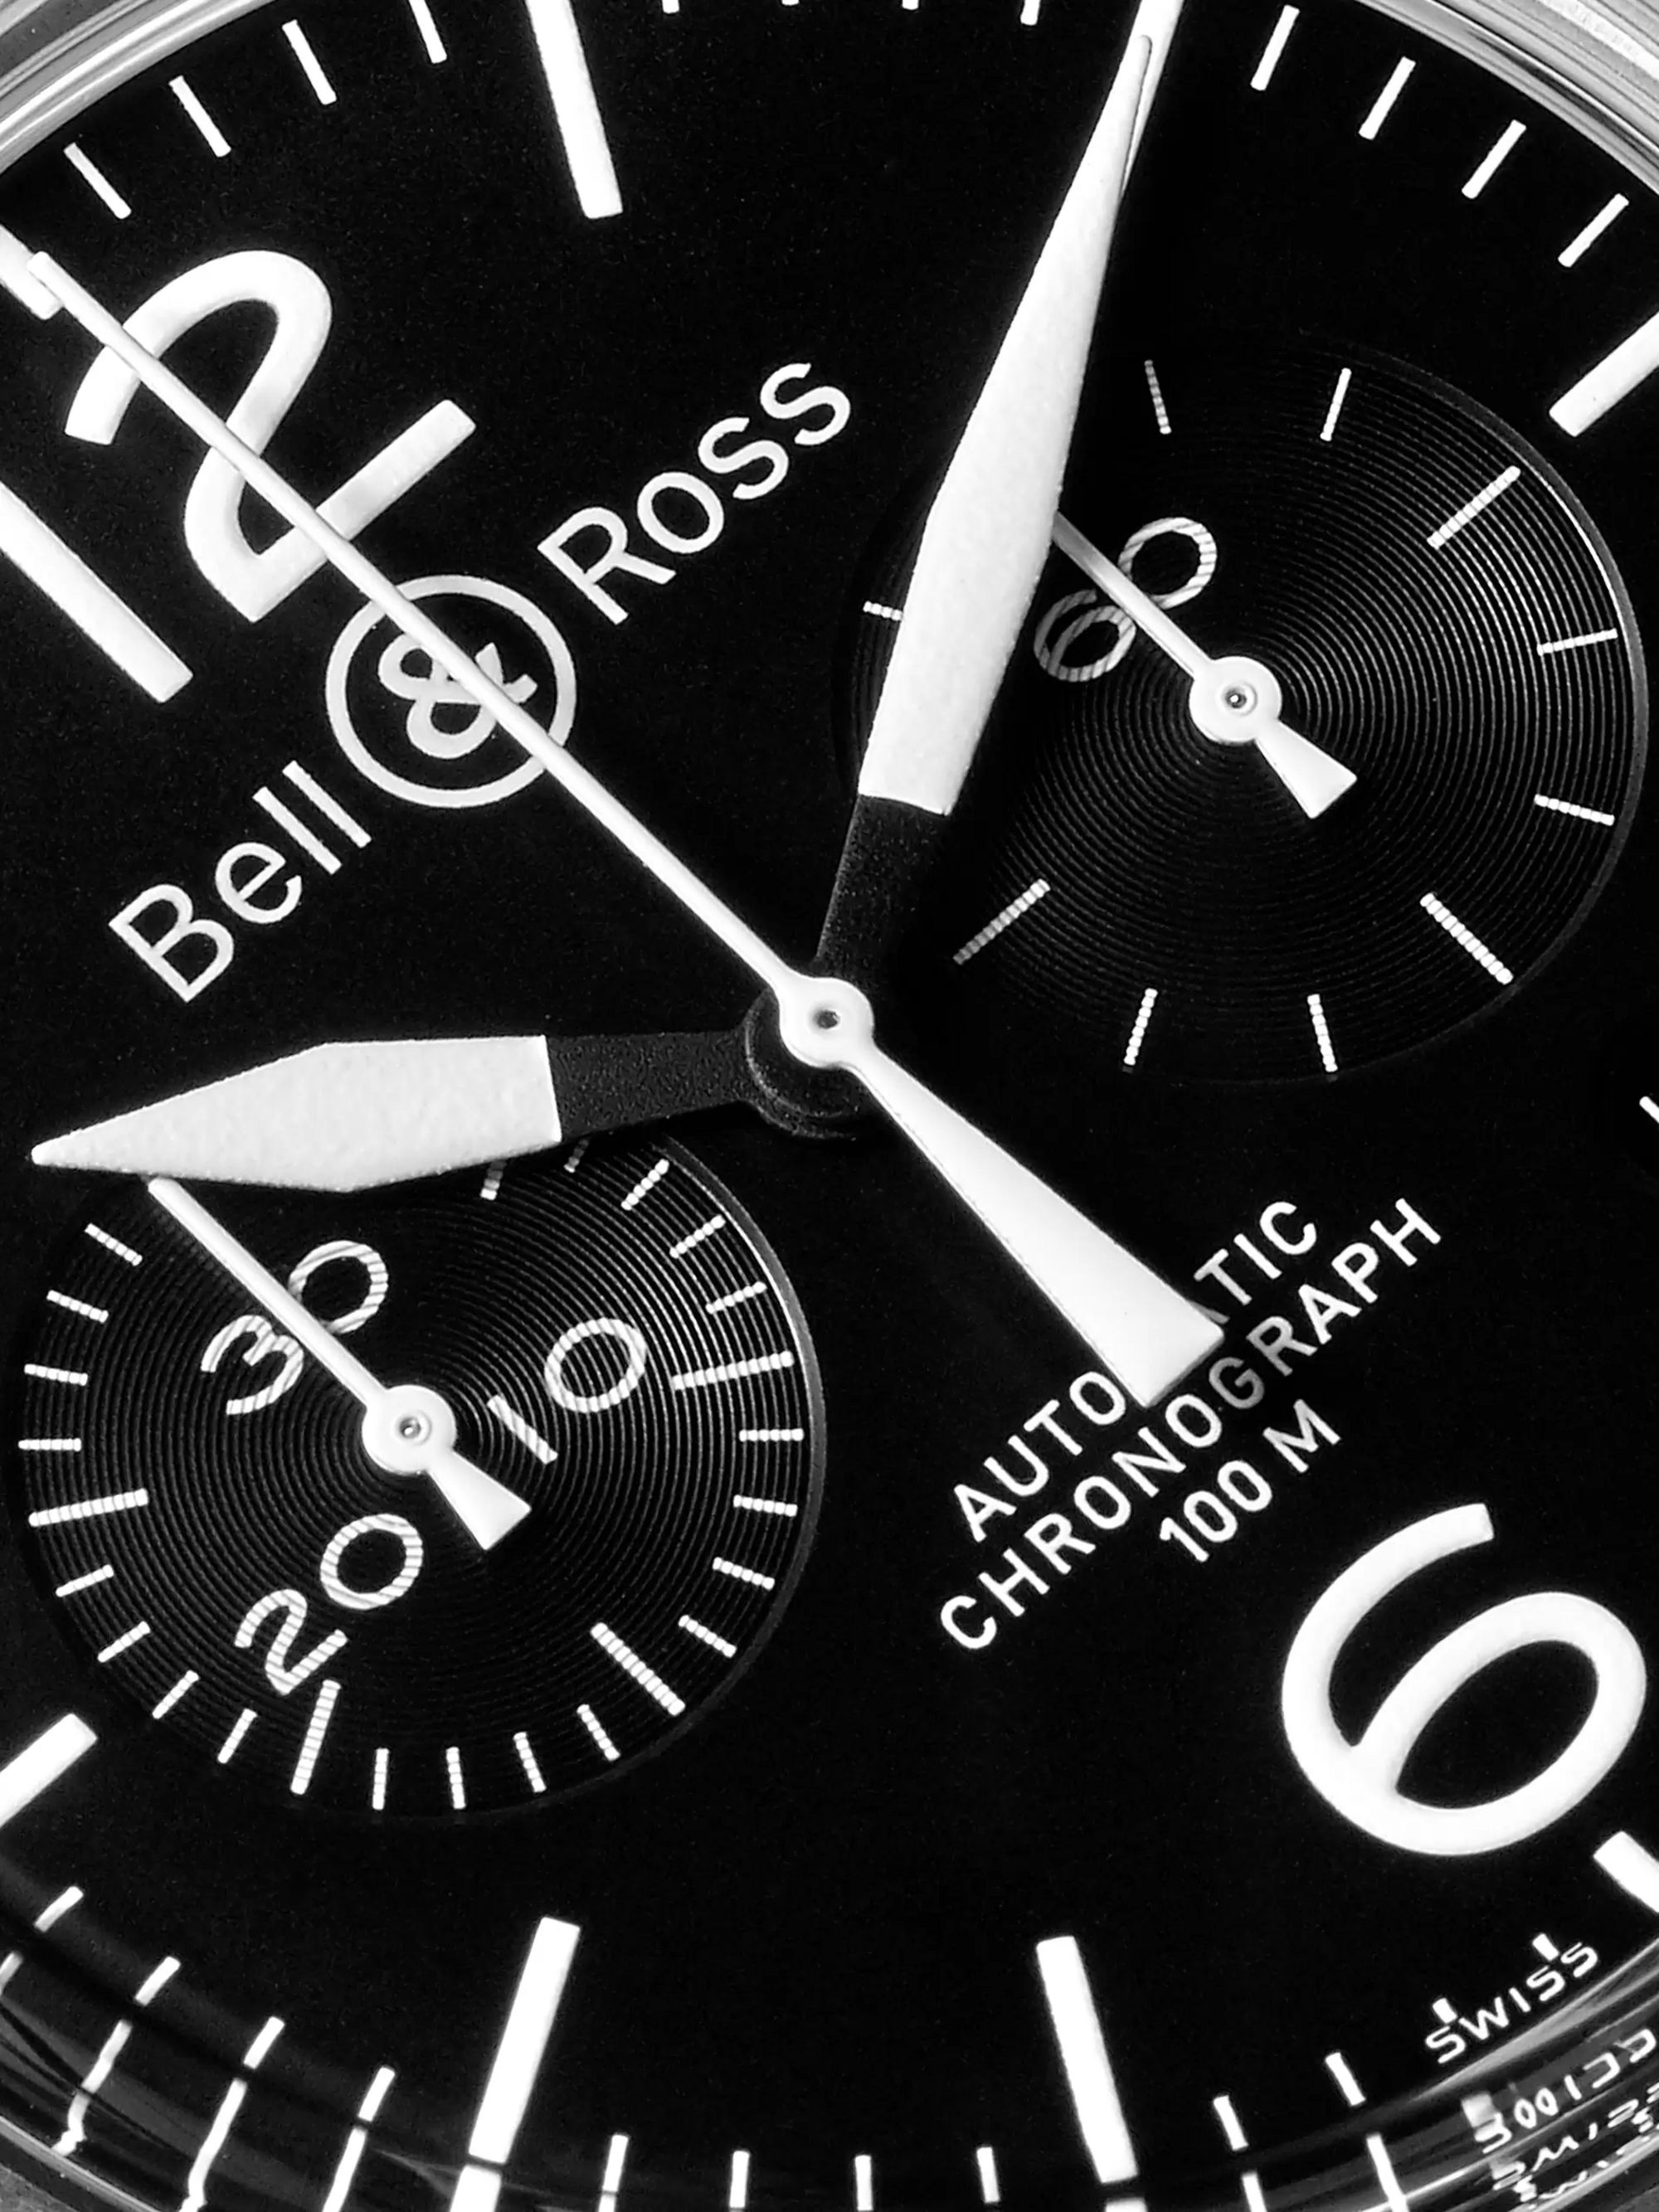 Bell & Ross BR 126 Automatic Chronograph 41mm Steel and Leather Watch, Ref. No. BRV126-BL-ST/SCA